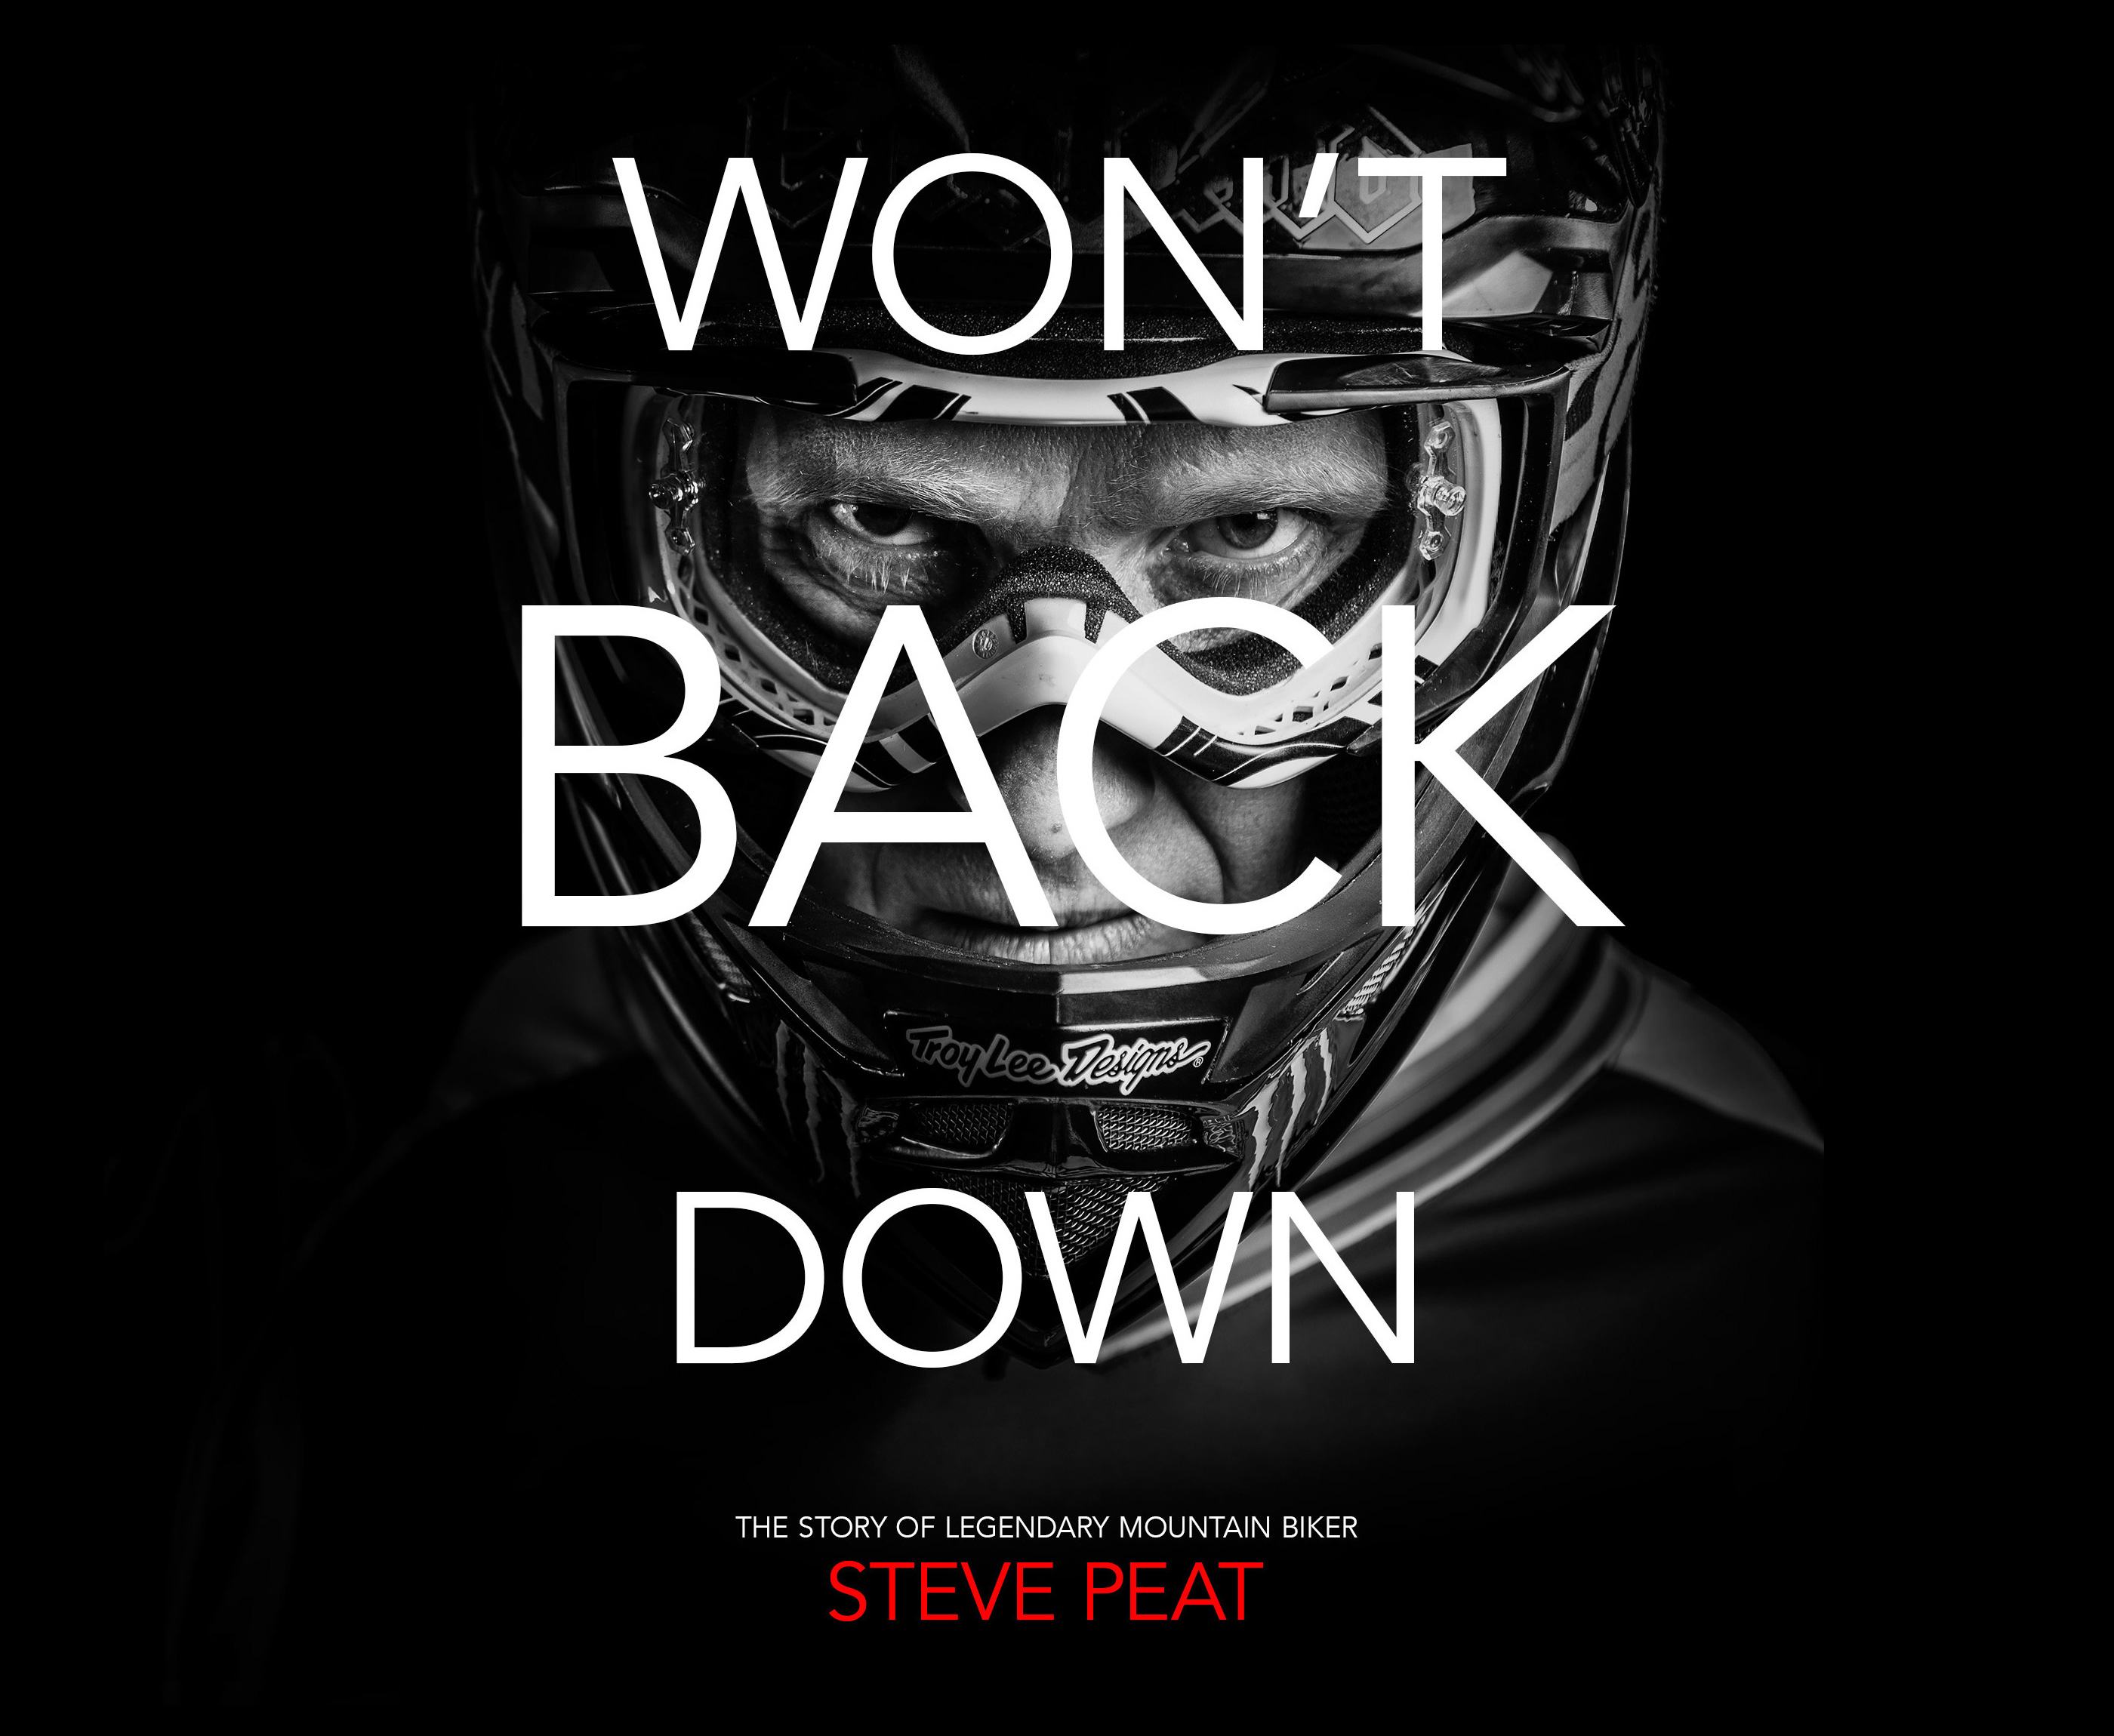 steve_peat_won_t_back_down_2013_film